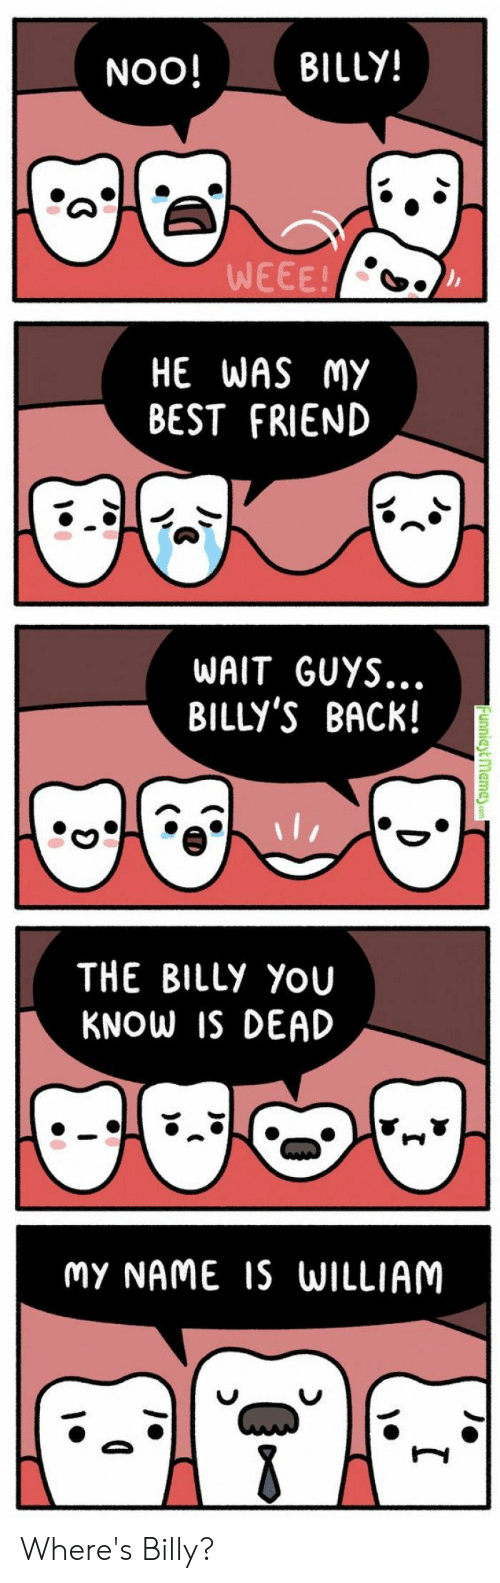 Best Friend, Best, and Back: BILLY!  NOO!  WEEE!  HE WAS MY  BEST FRIEND  WAIT GUYS..  BILLY'S BACK!  THE BILLy YoU  KNOW IS DEAD  MY NAME S WILLIAM Where's Billy?